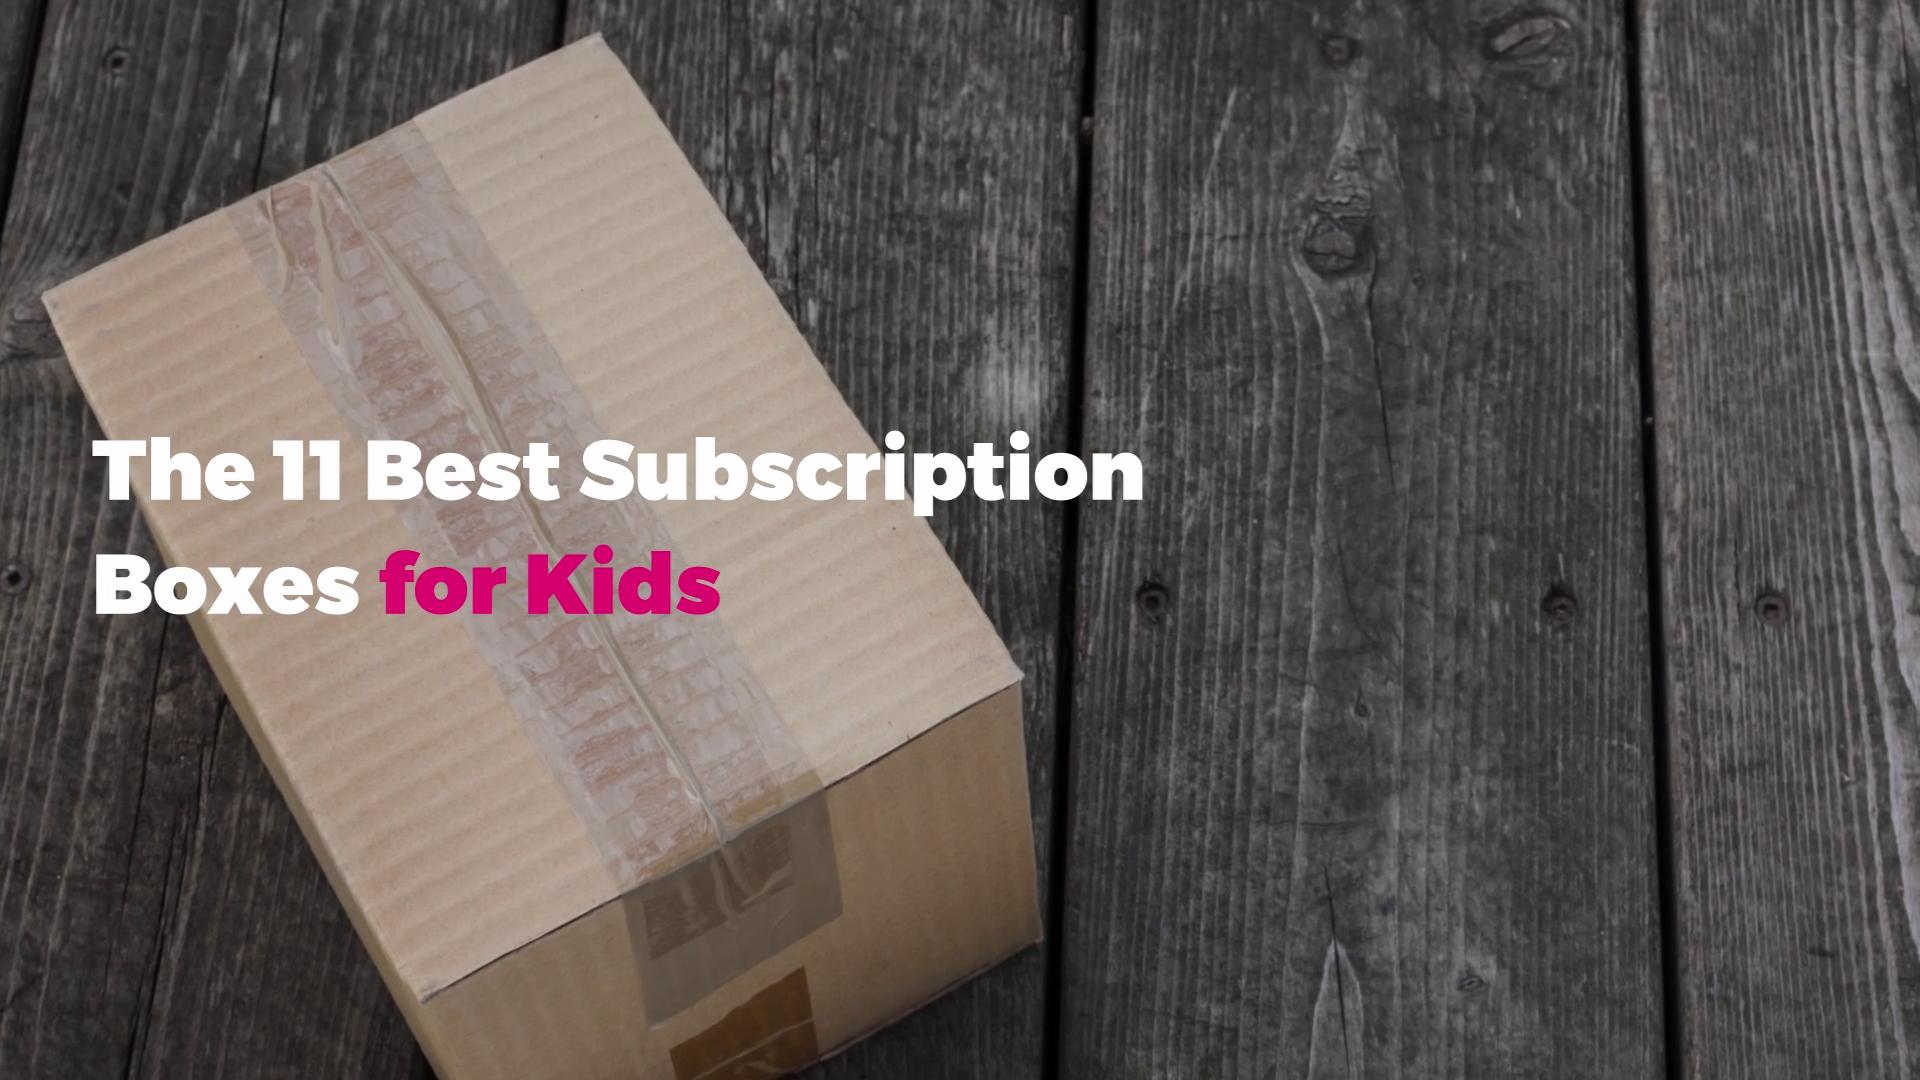 The 11 Best Back-to-School Subscription Boxes for Kids